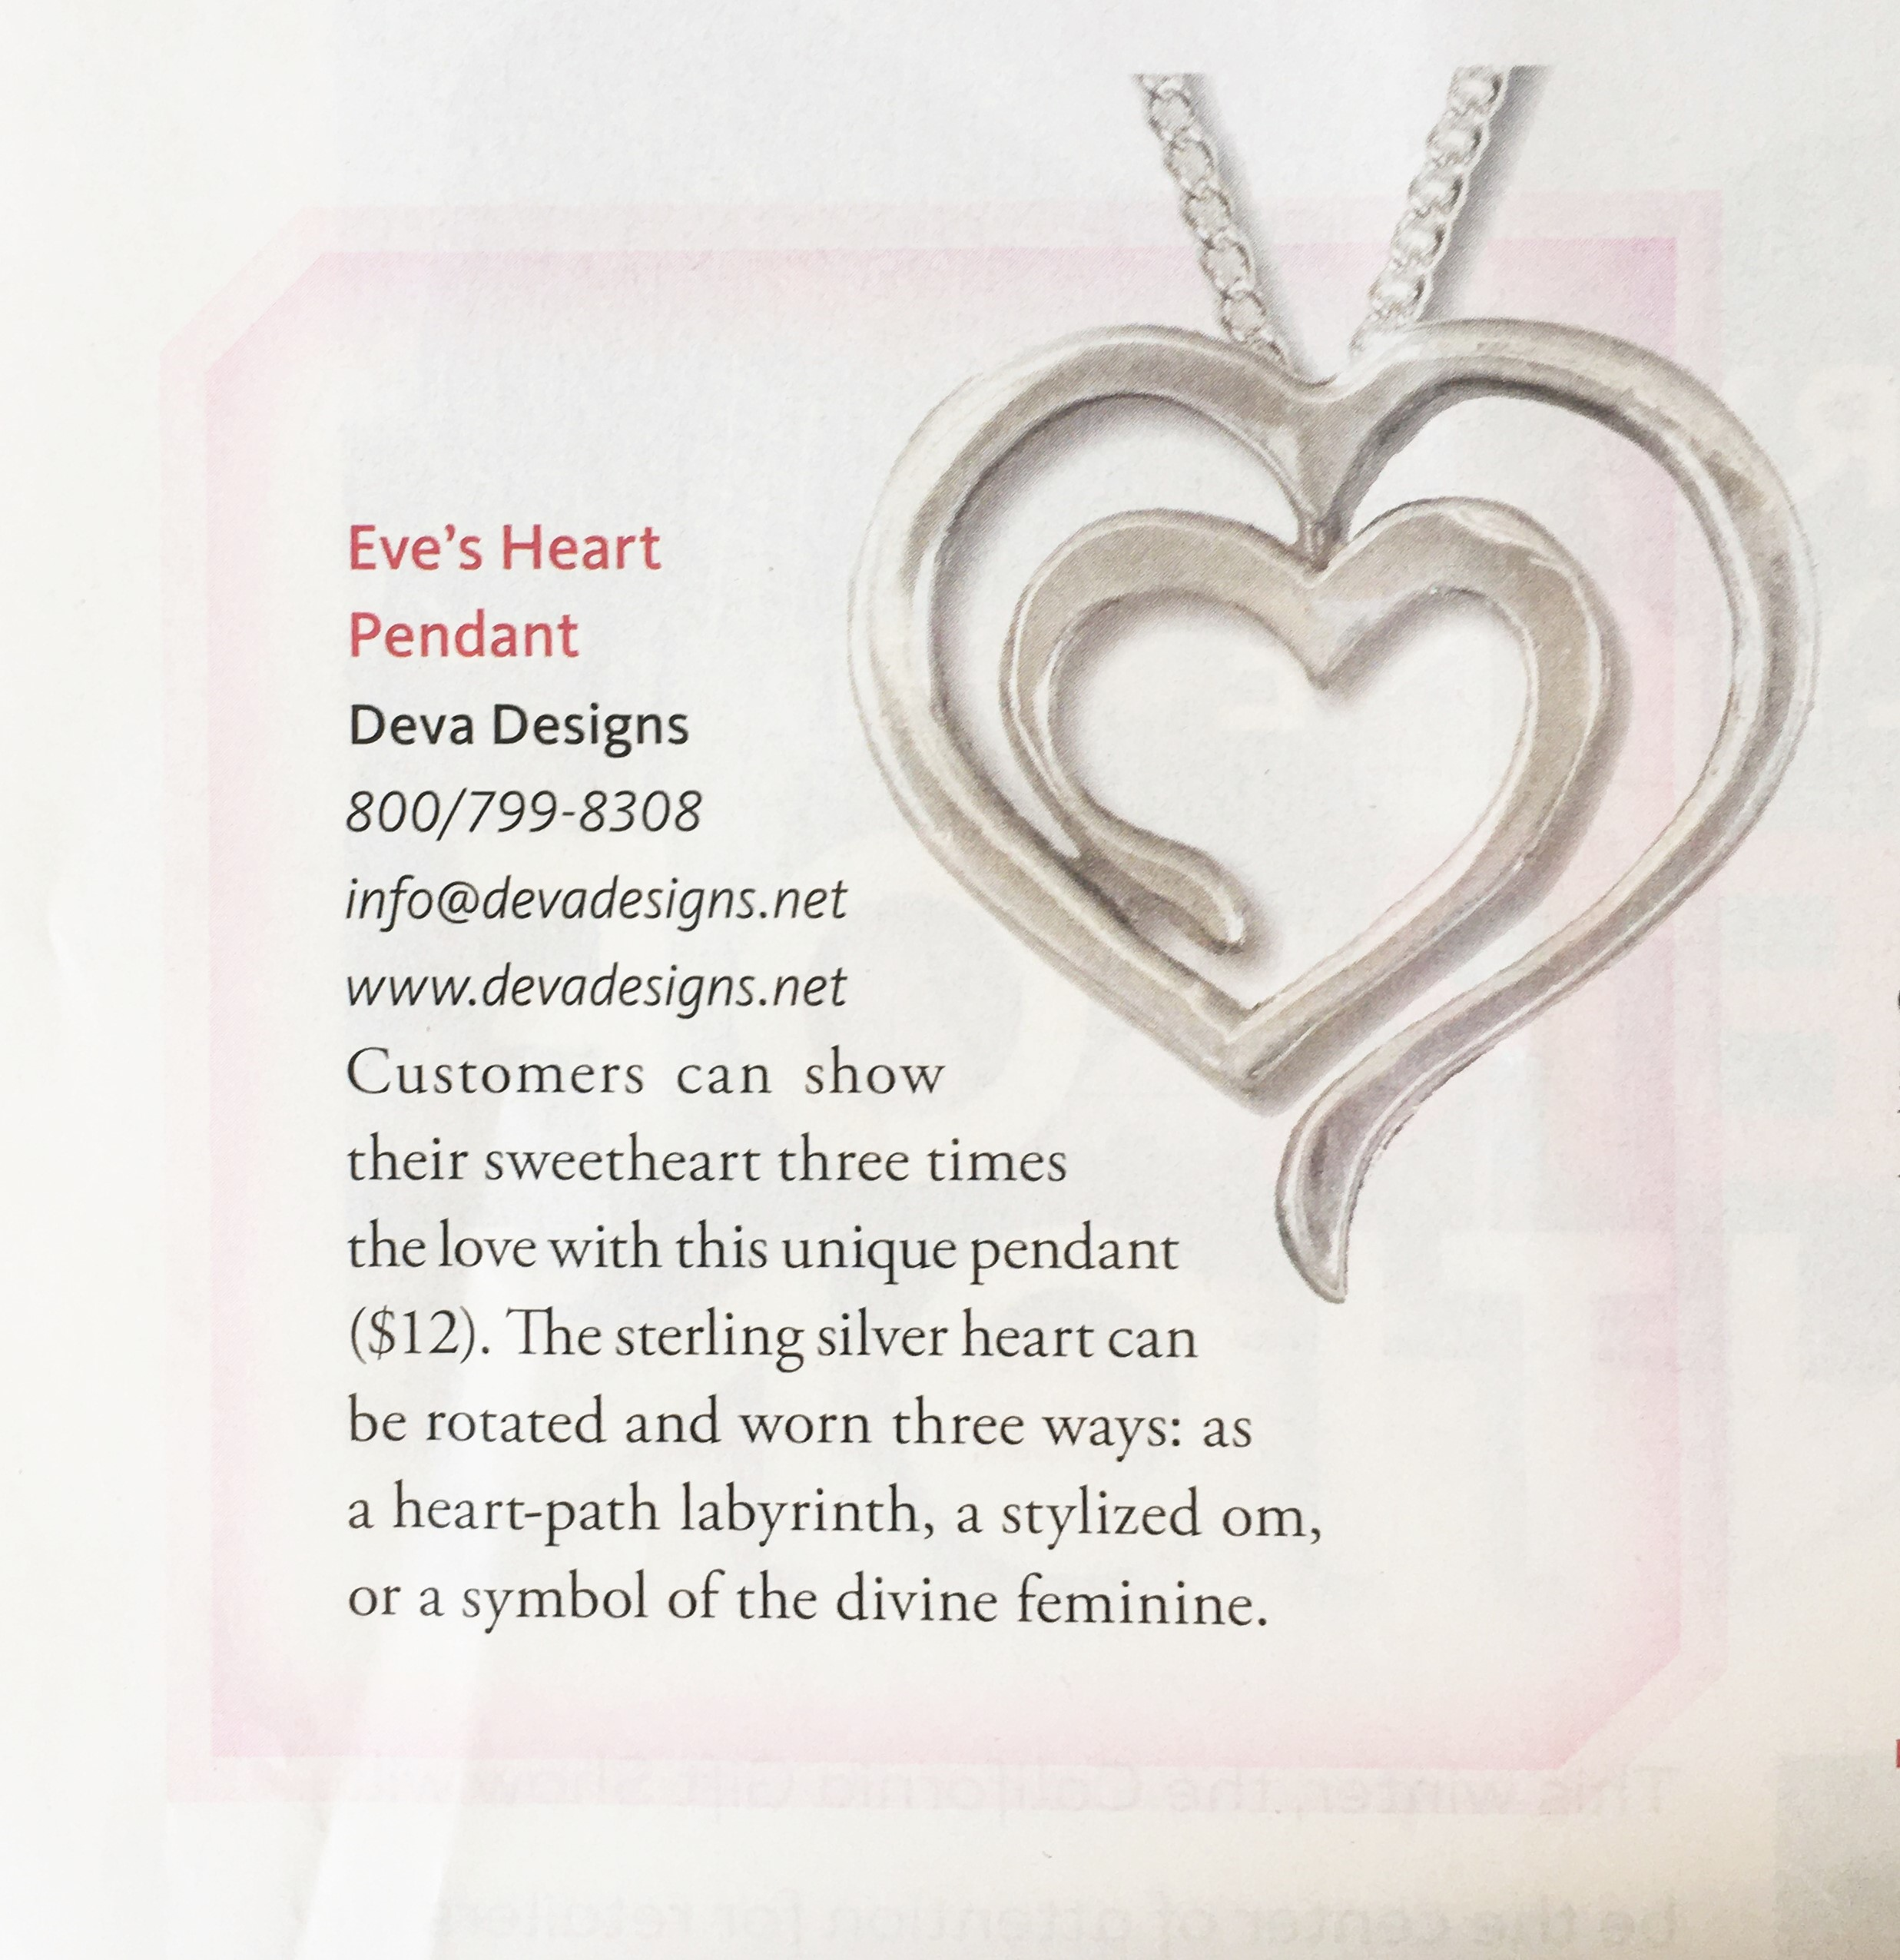 Eve's Heart Pendant featured in Retailing Insight